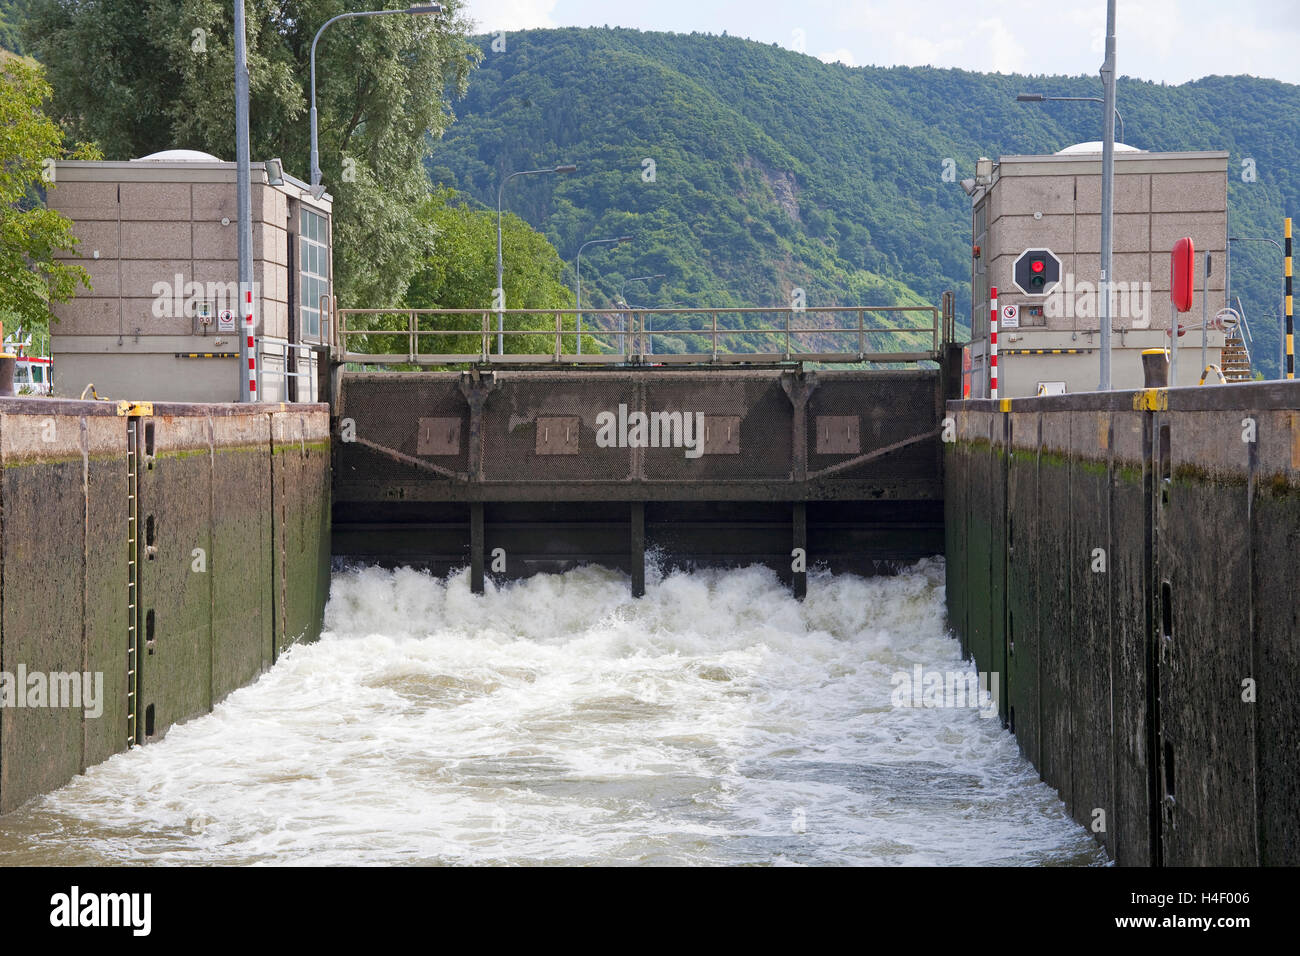 Barrage and sluice, Moselle in Wintrich, Rhineland-Palatinate, Germany - Stock Image